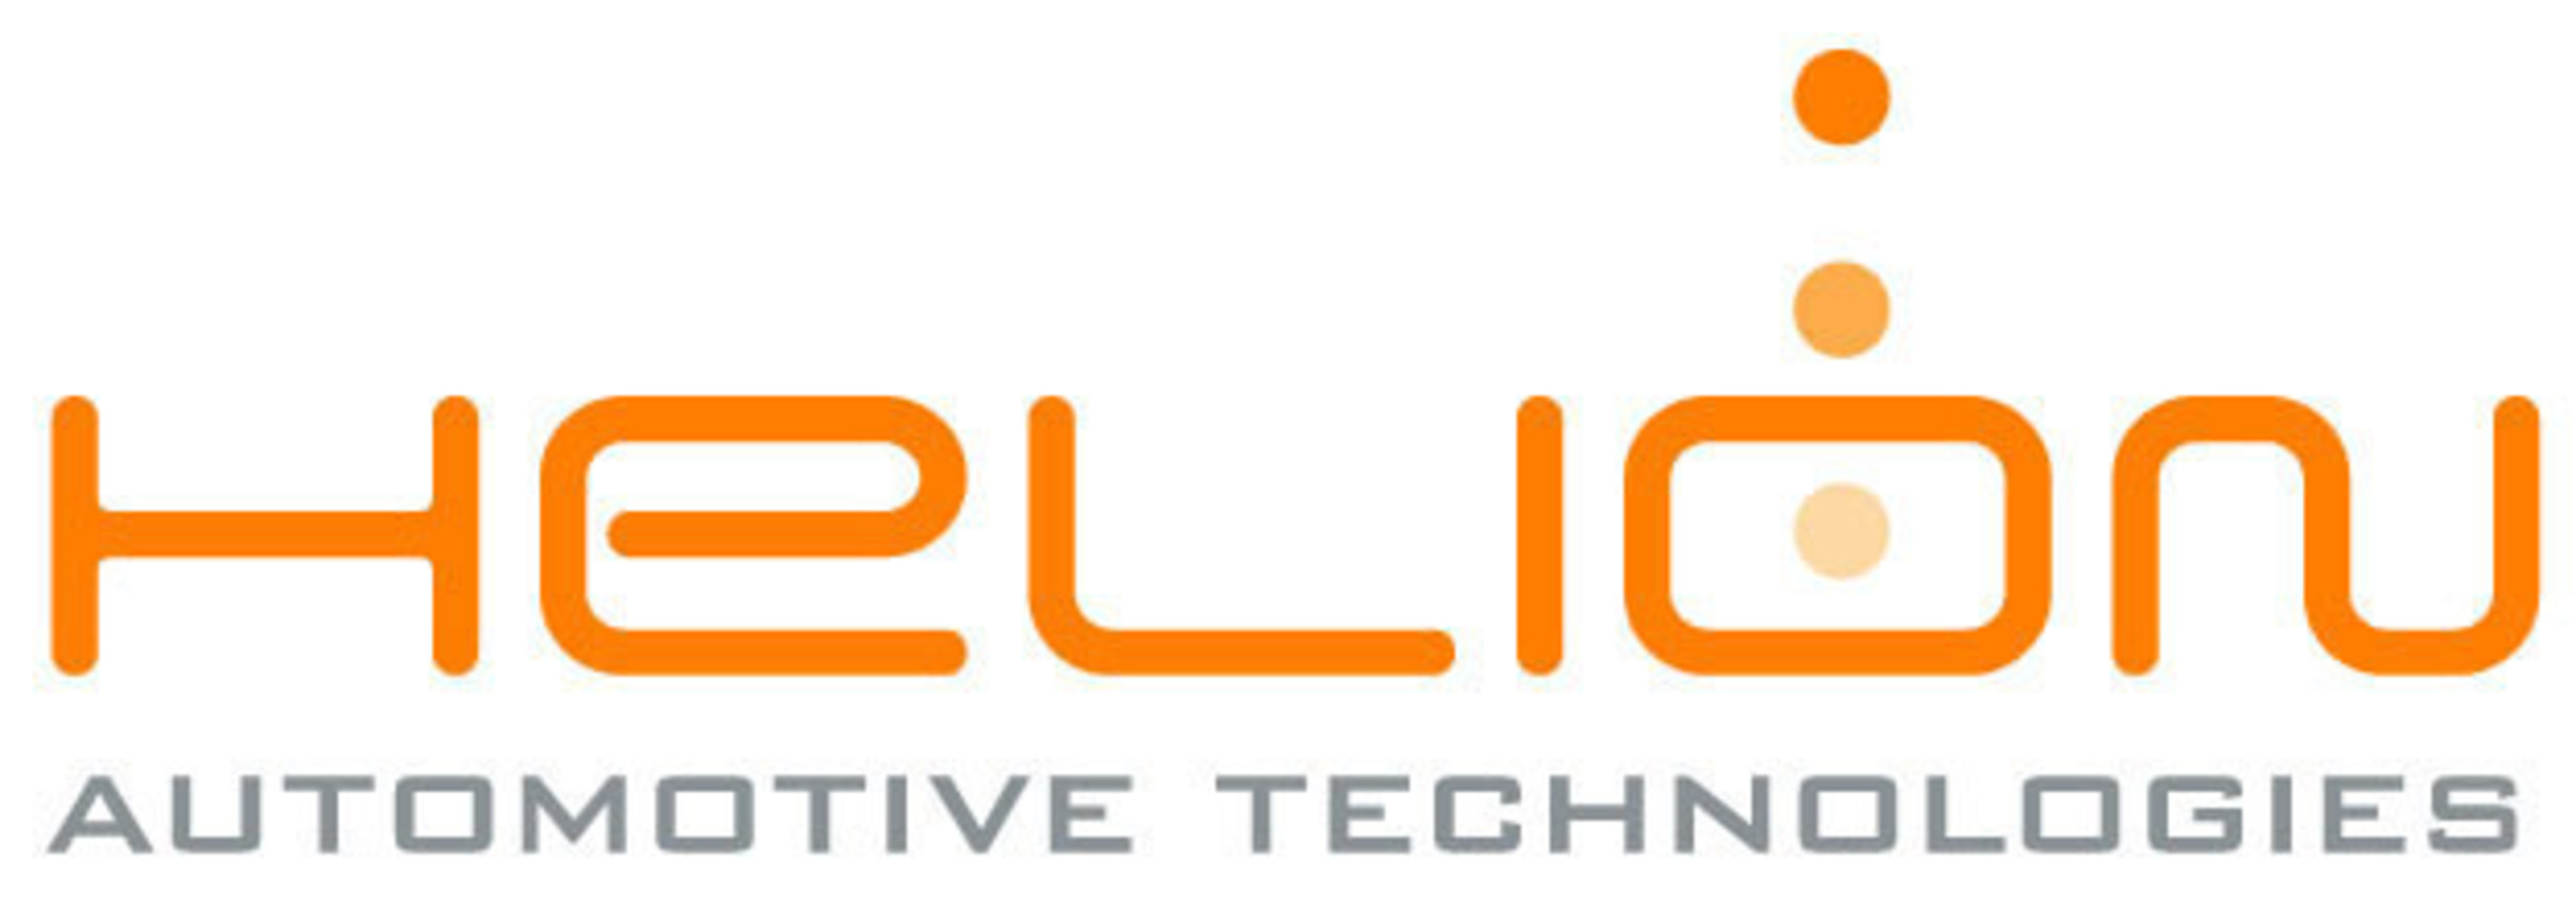 Helion Technologies Adds $1 Million to John Eagle Auto Group's Bottom Line with Cisco TelePresence' and Mobile HD Video Conferencing